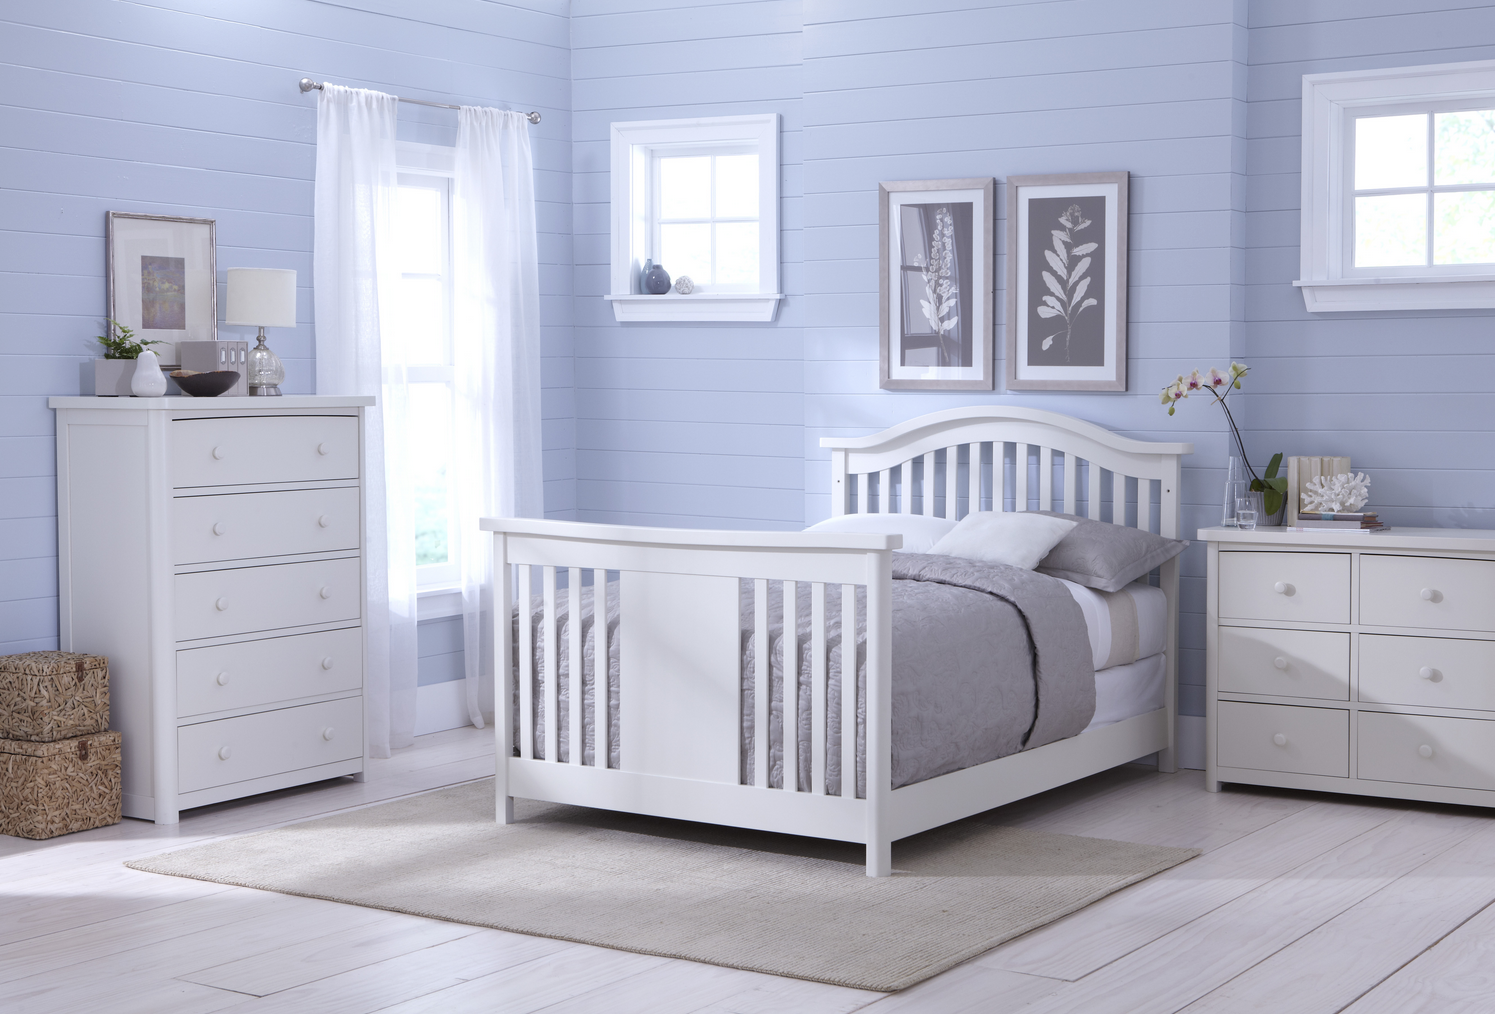 86 Baby Appleseed Stratford Crib Babys Dream Heritage Collection With Memphis Crib In